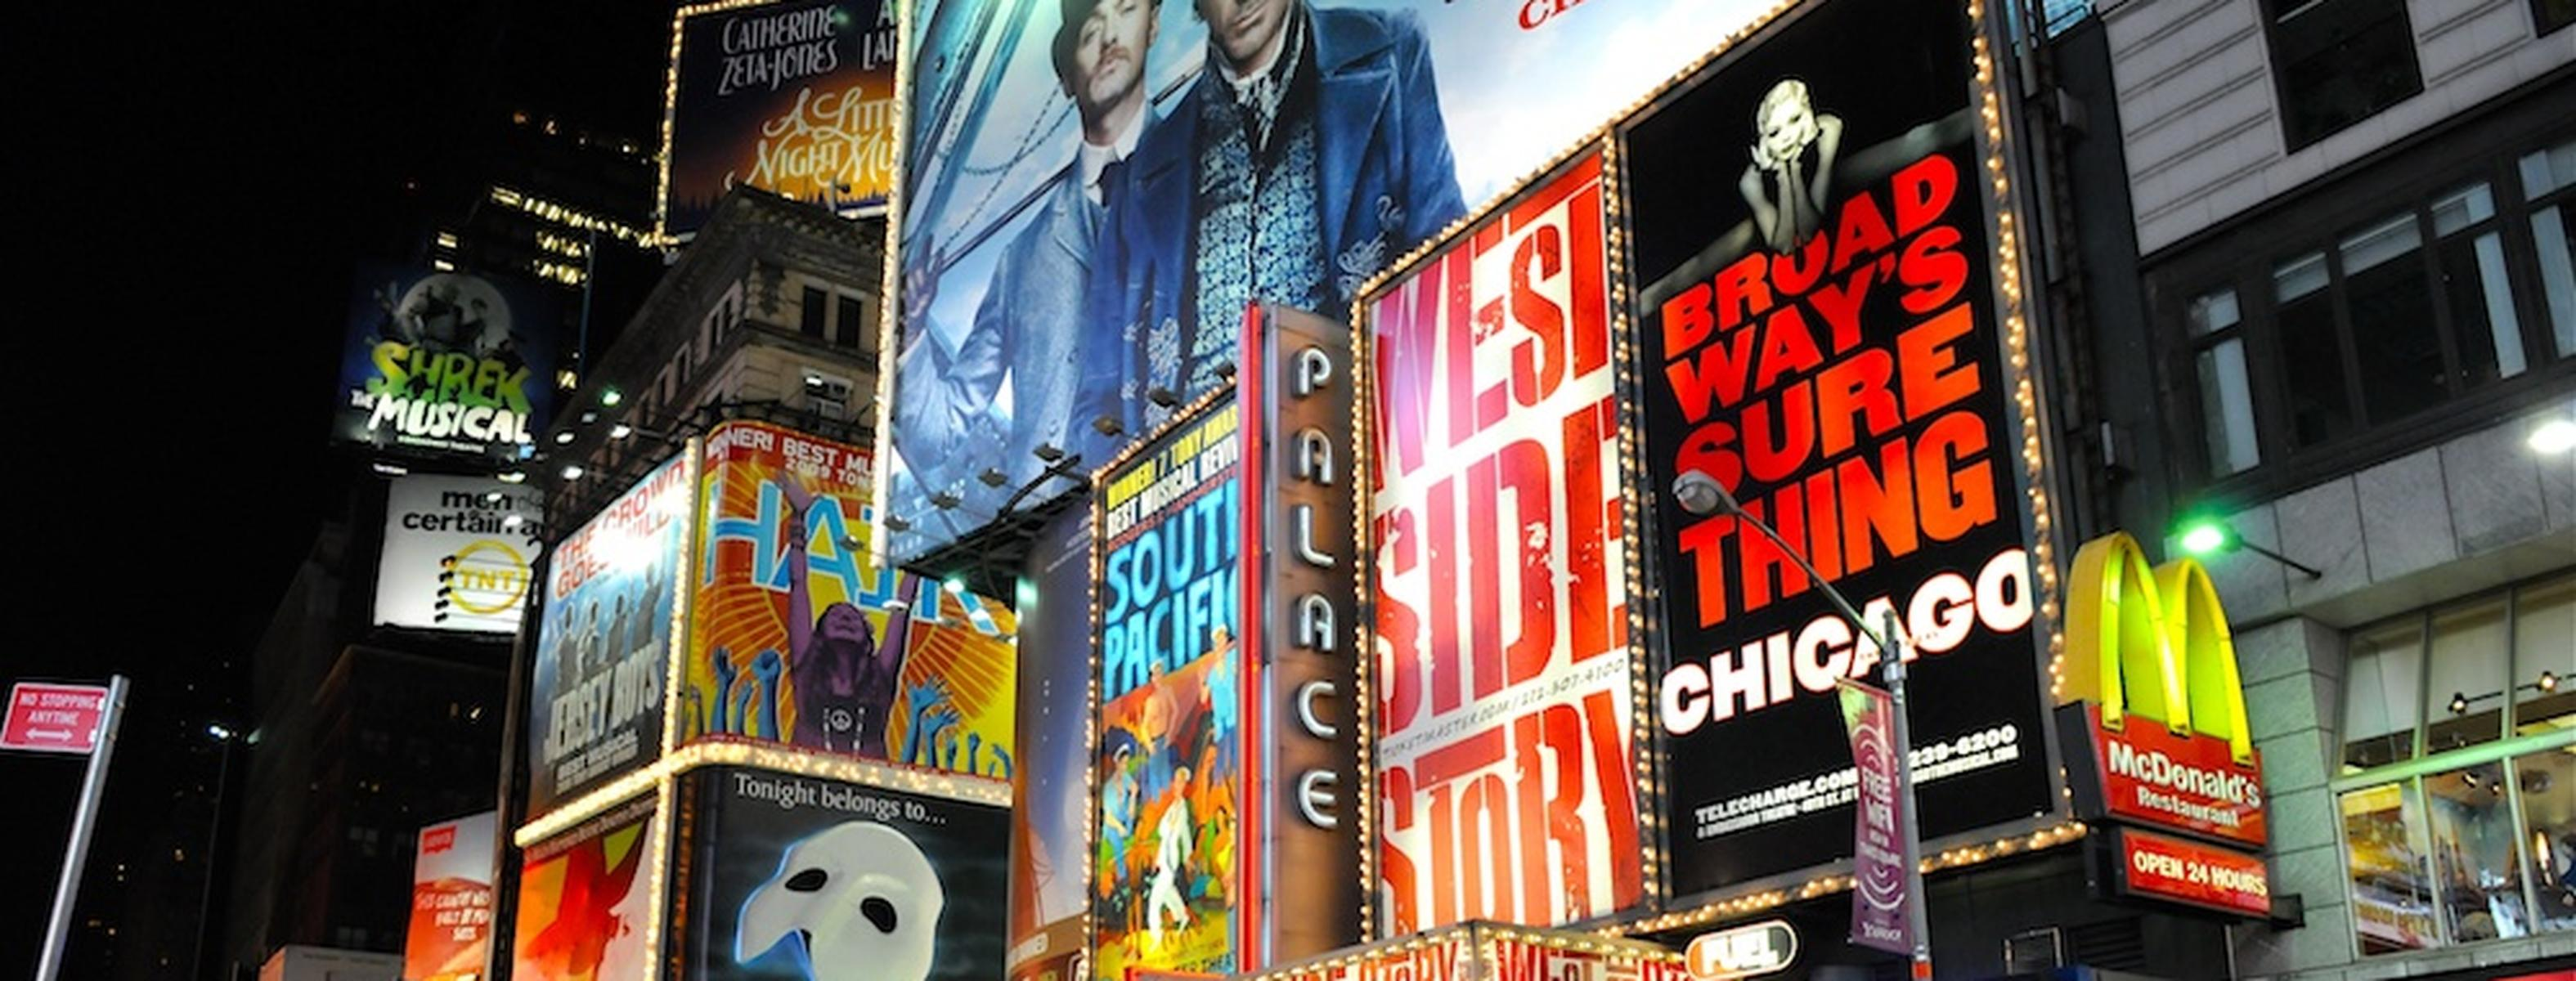 New broadway musical auditions